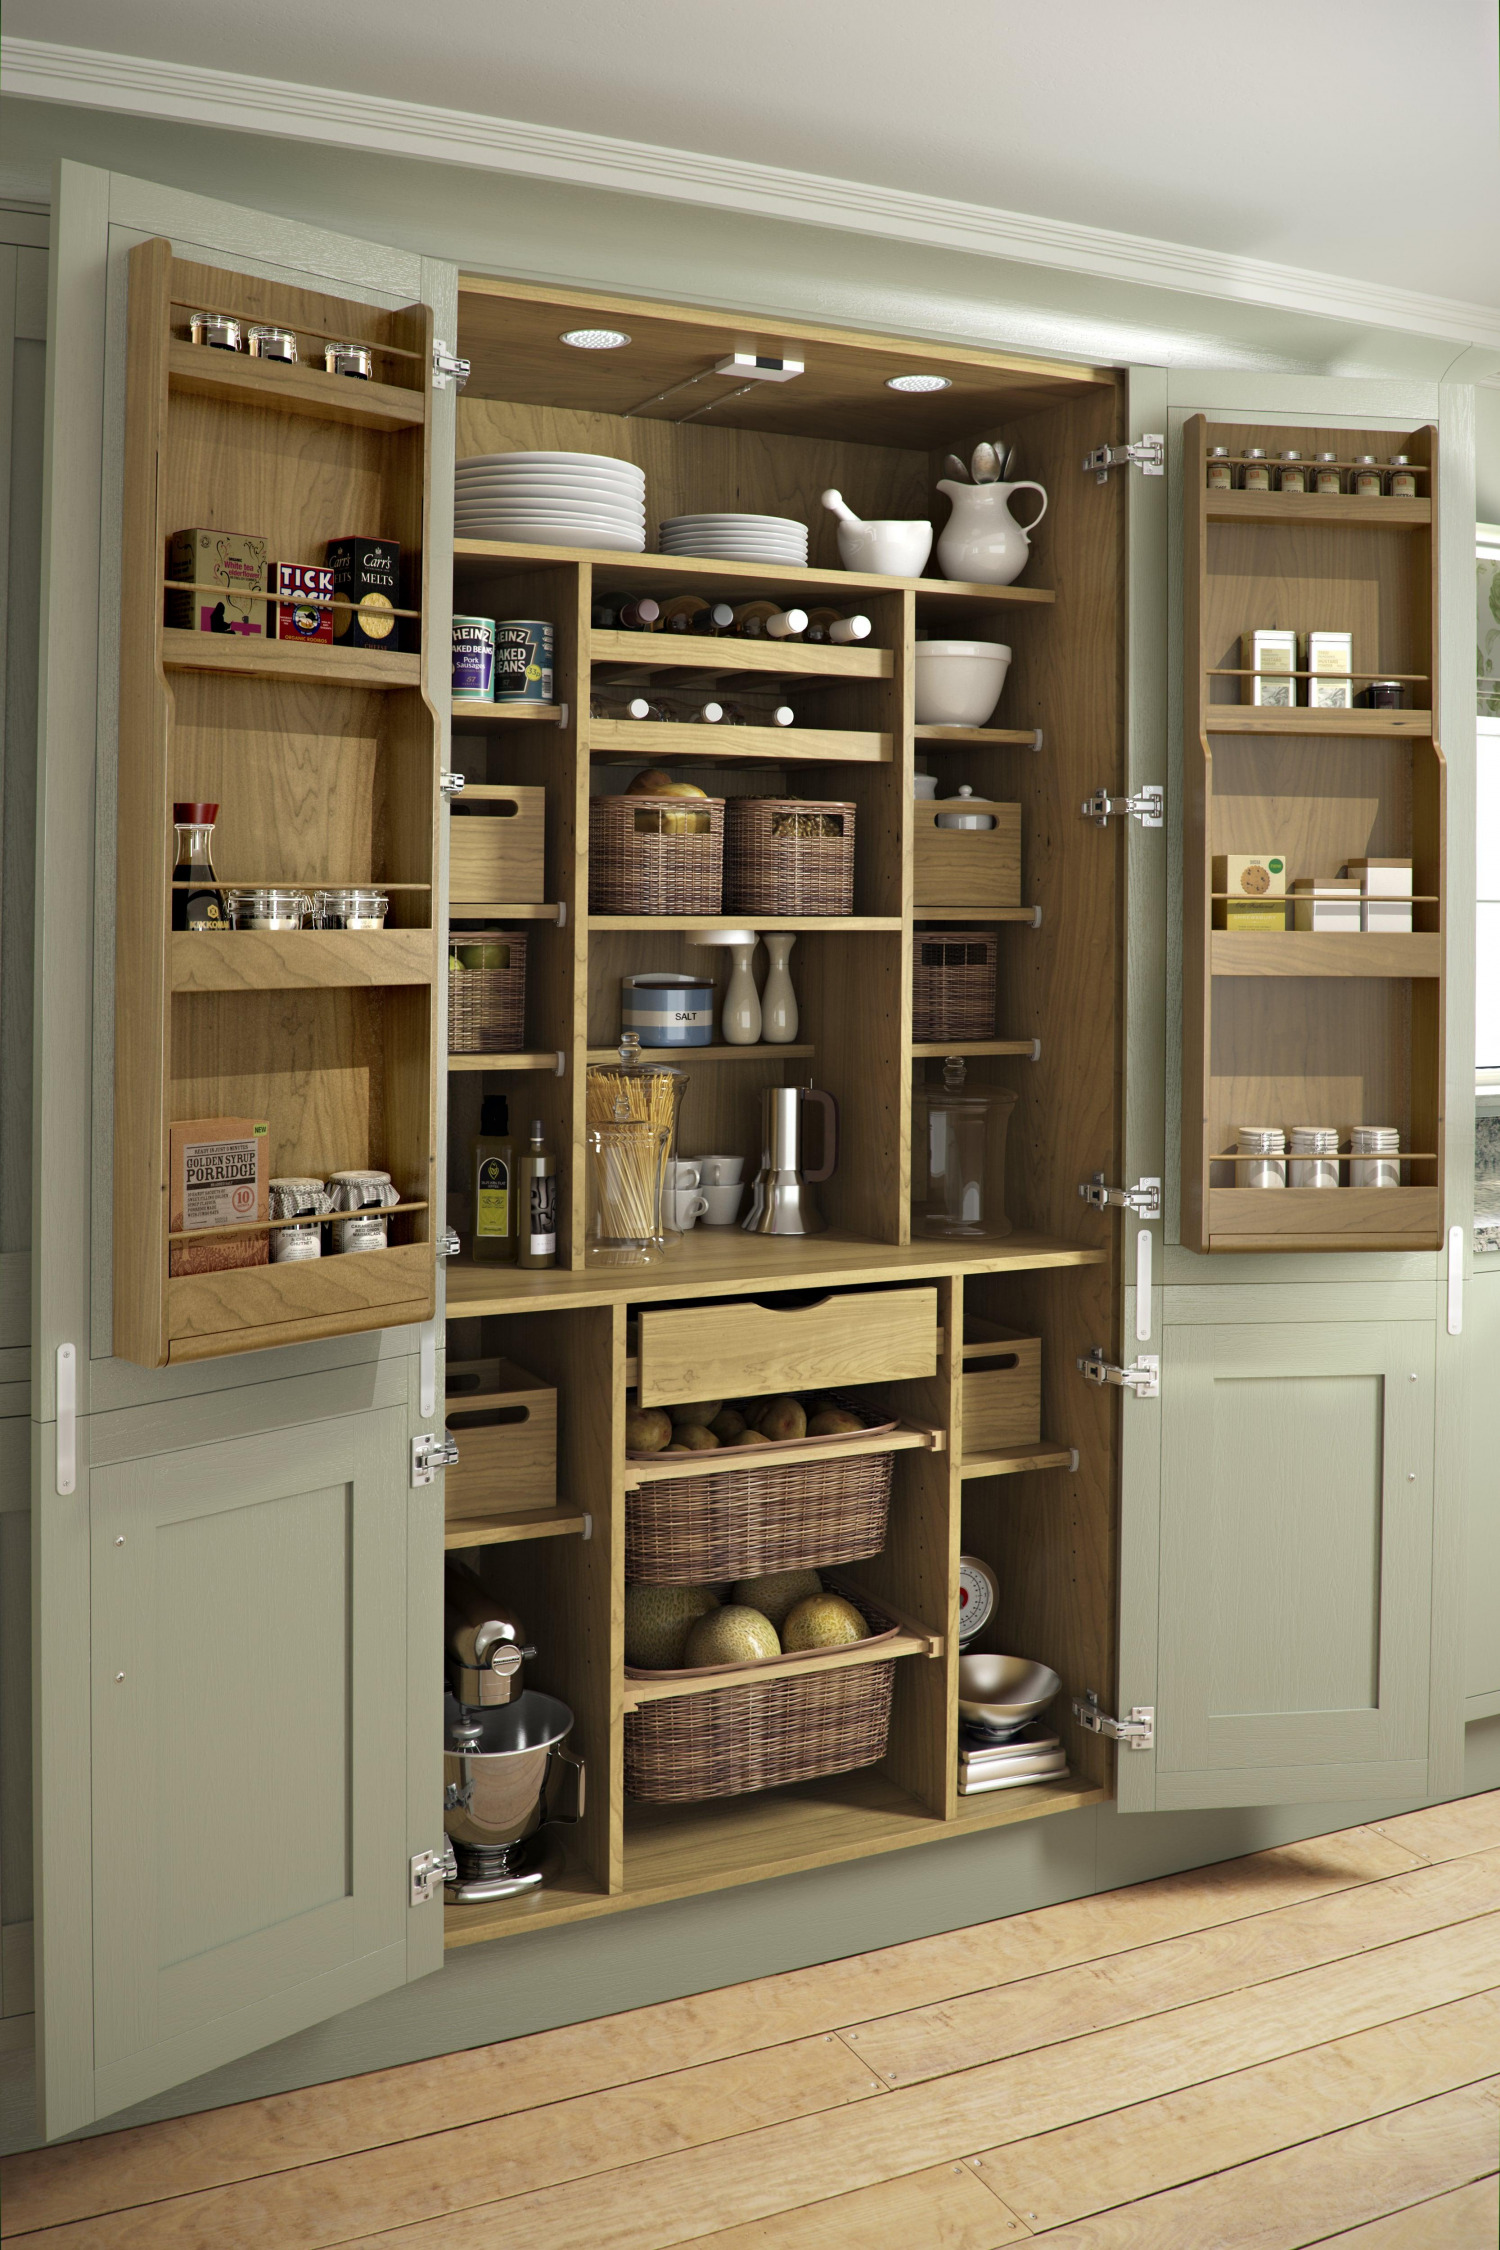 kitchen shelving: discover storage ideas for your home | omega plc